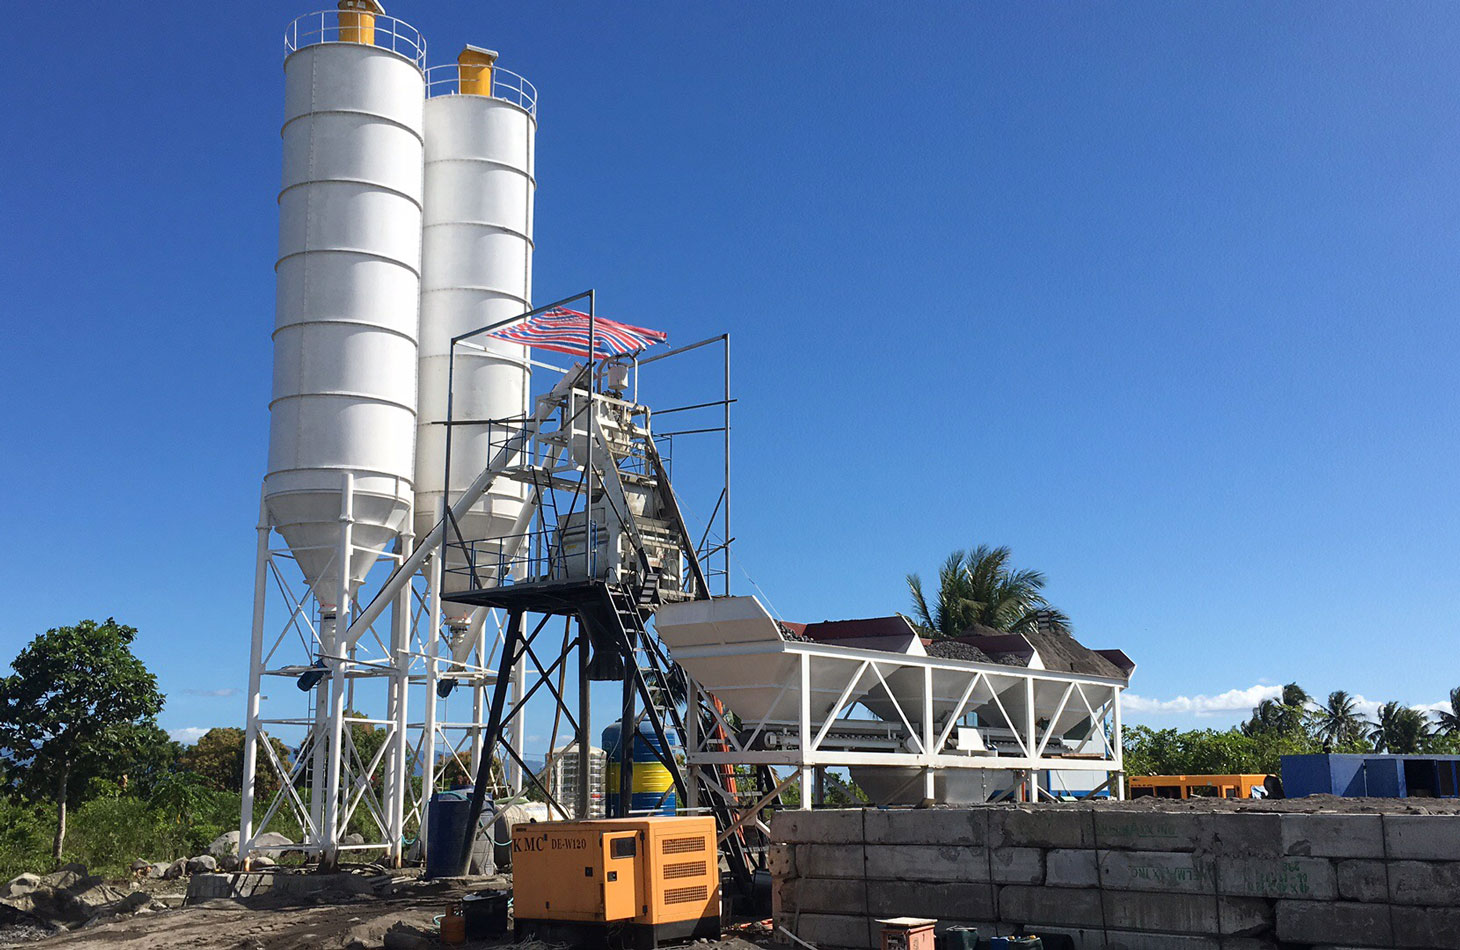 AJ-50 small batching plant in the Philippines